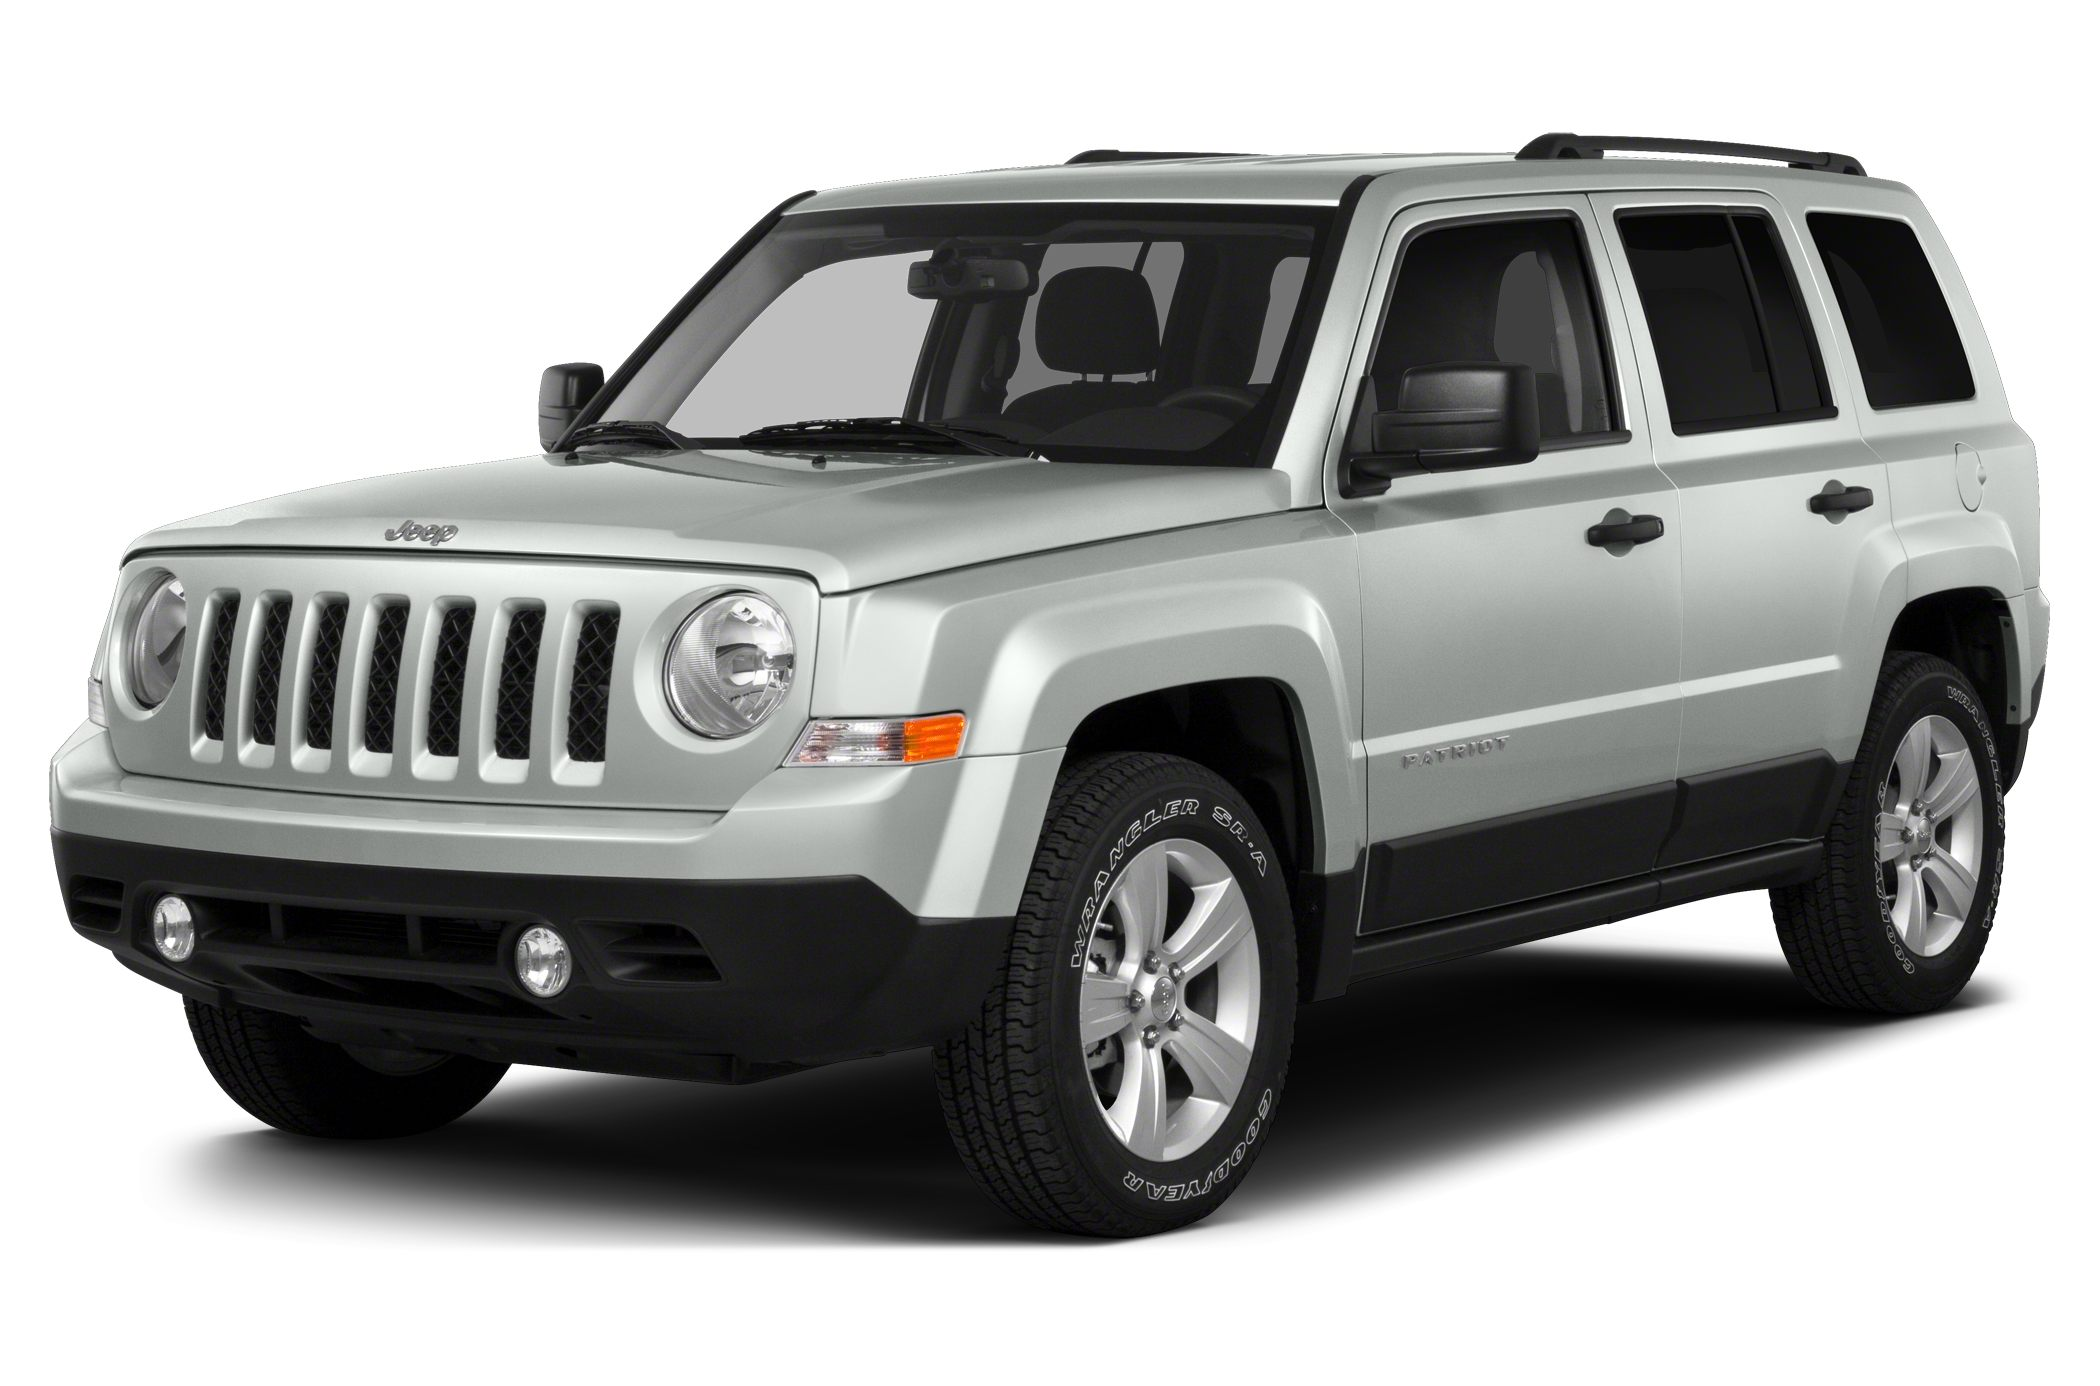 2015 Jeep Patriot Sport SUV for sale in Forest City for $25,335 with 4 miles